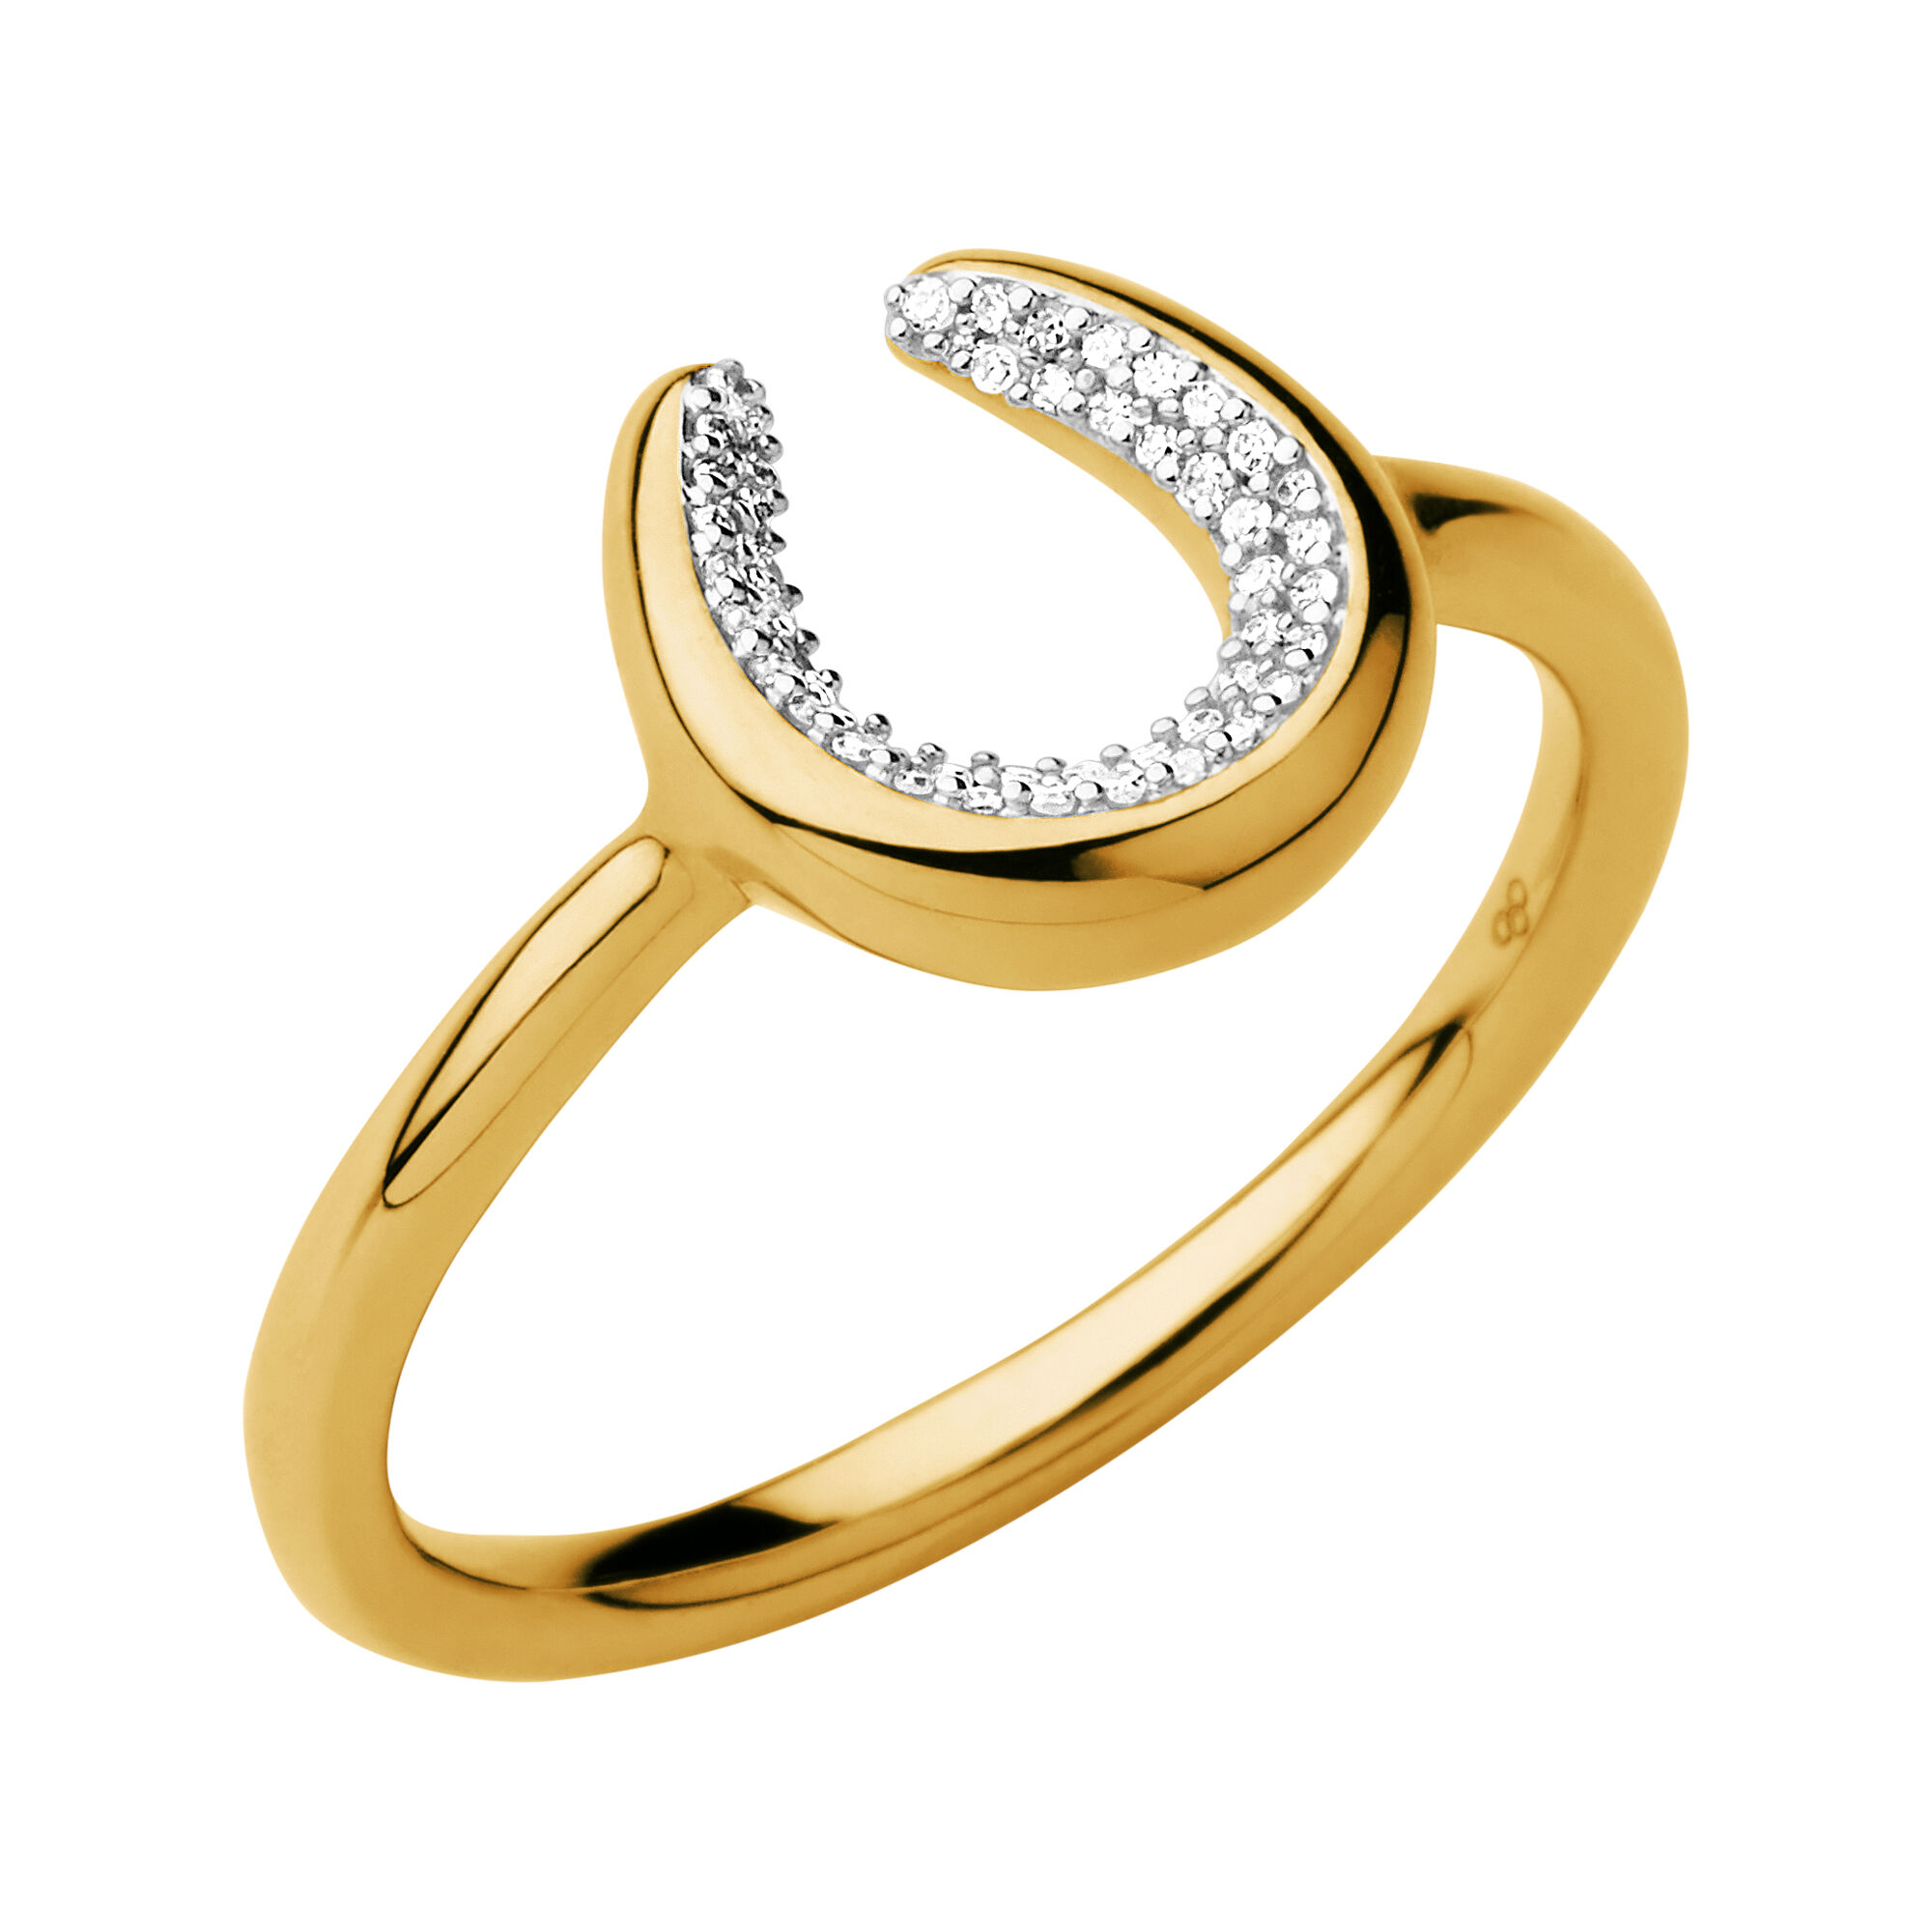 pure info for gold jewelry definition wedding rings karat